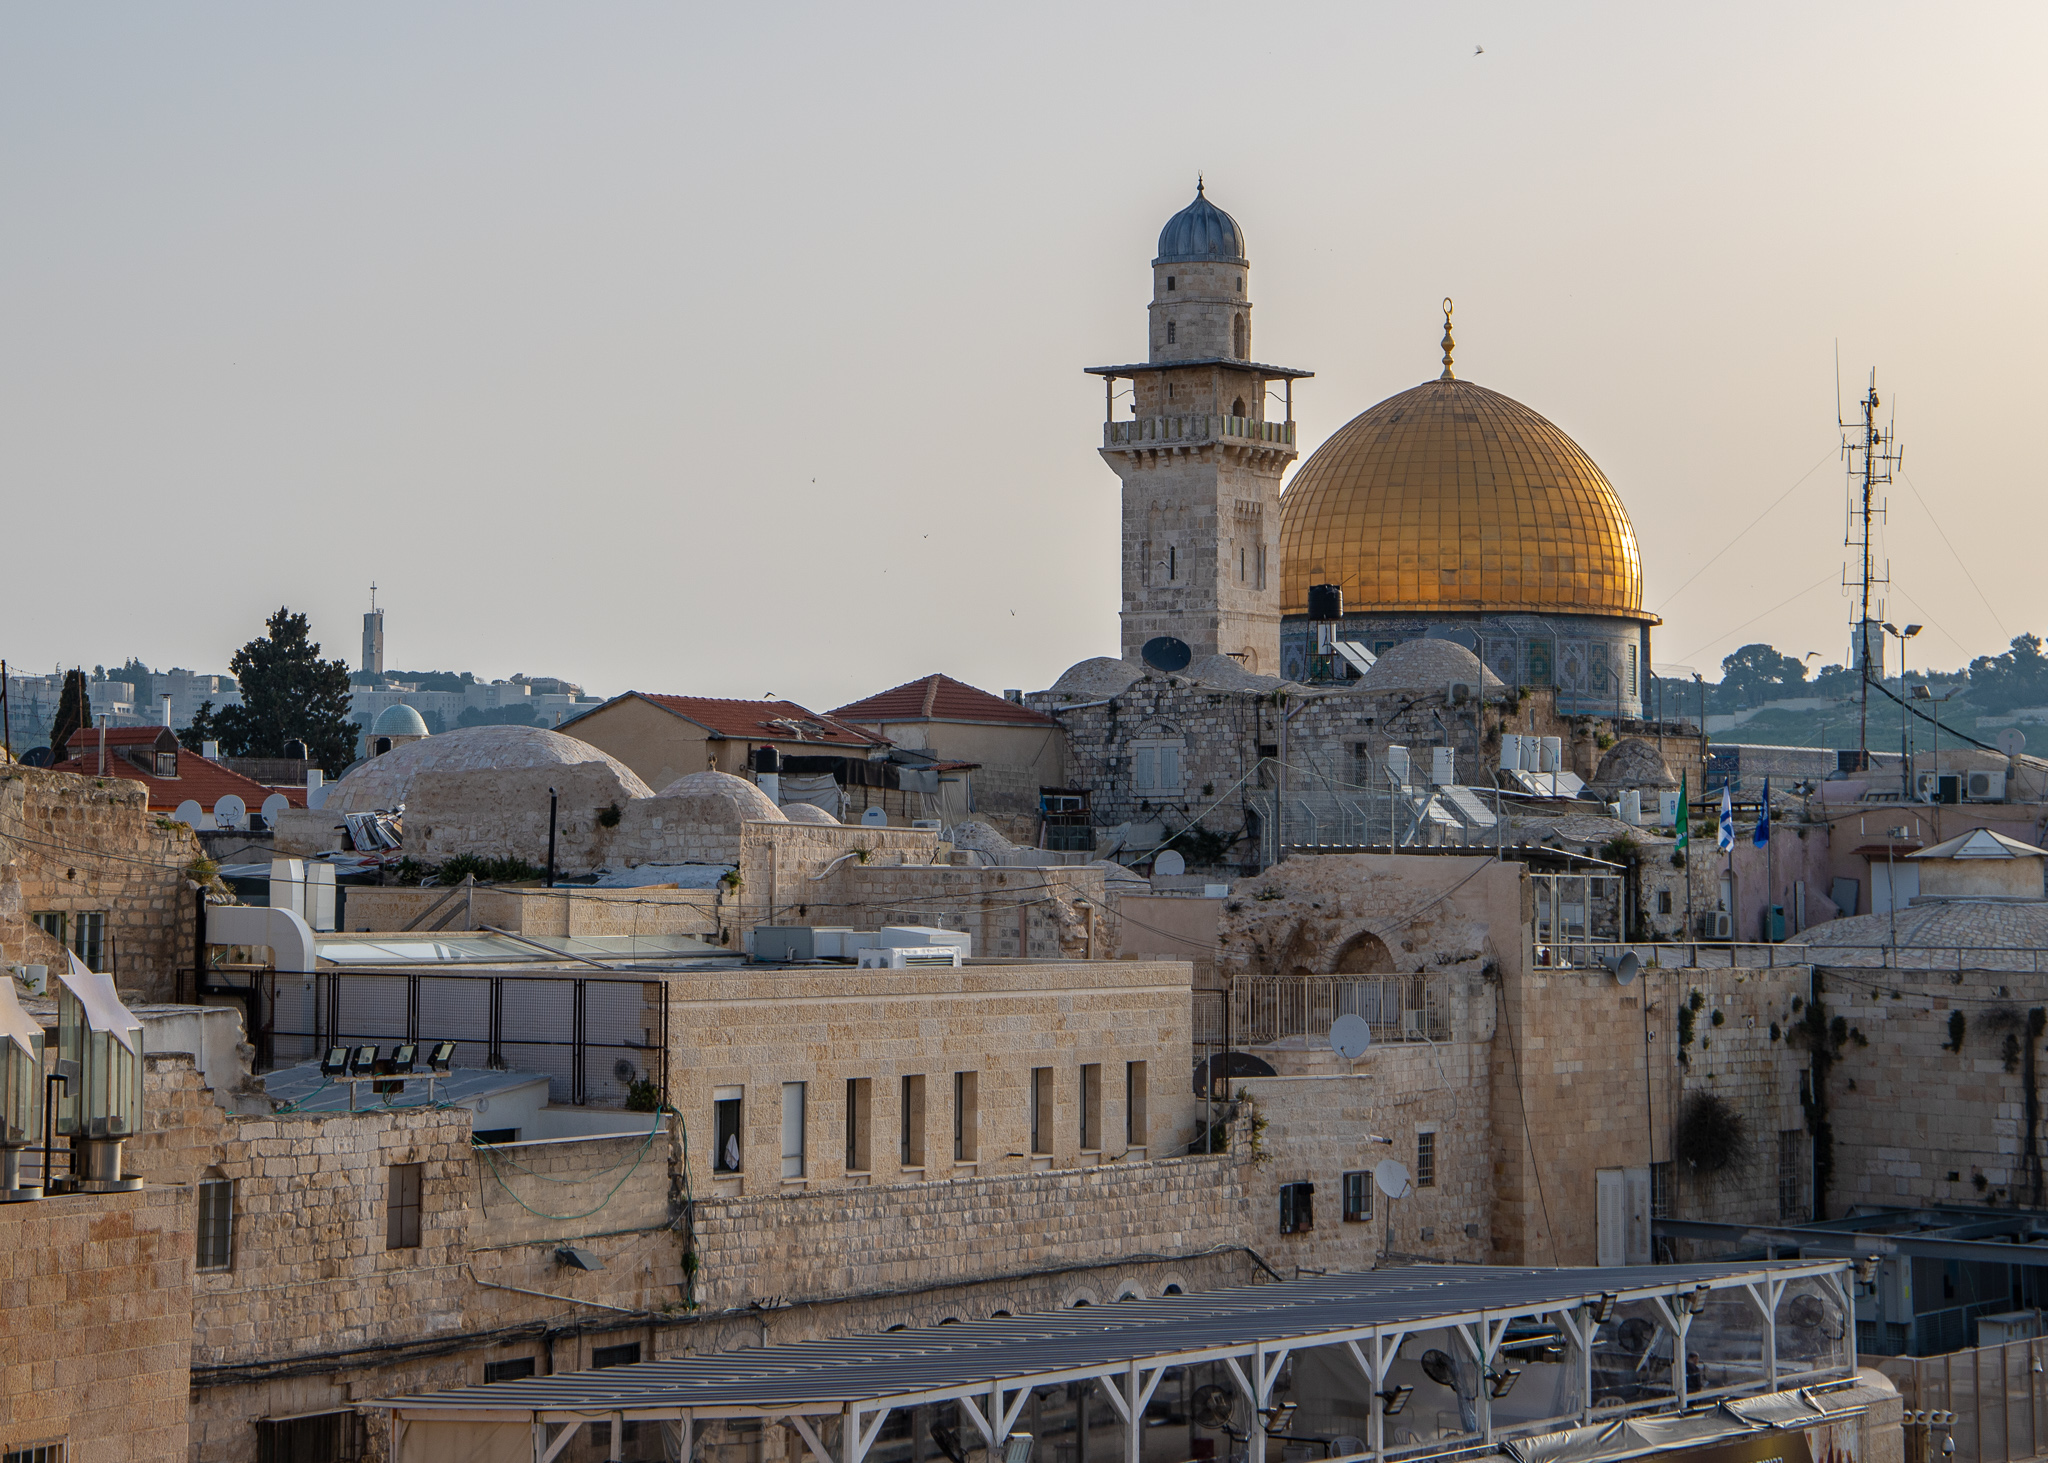 Early morning view of the Dome of the Rock from inside the Old City walls